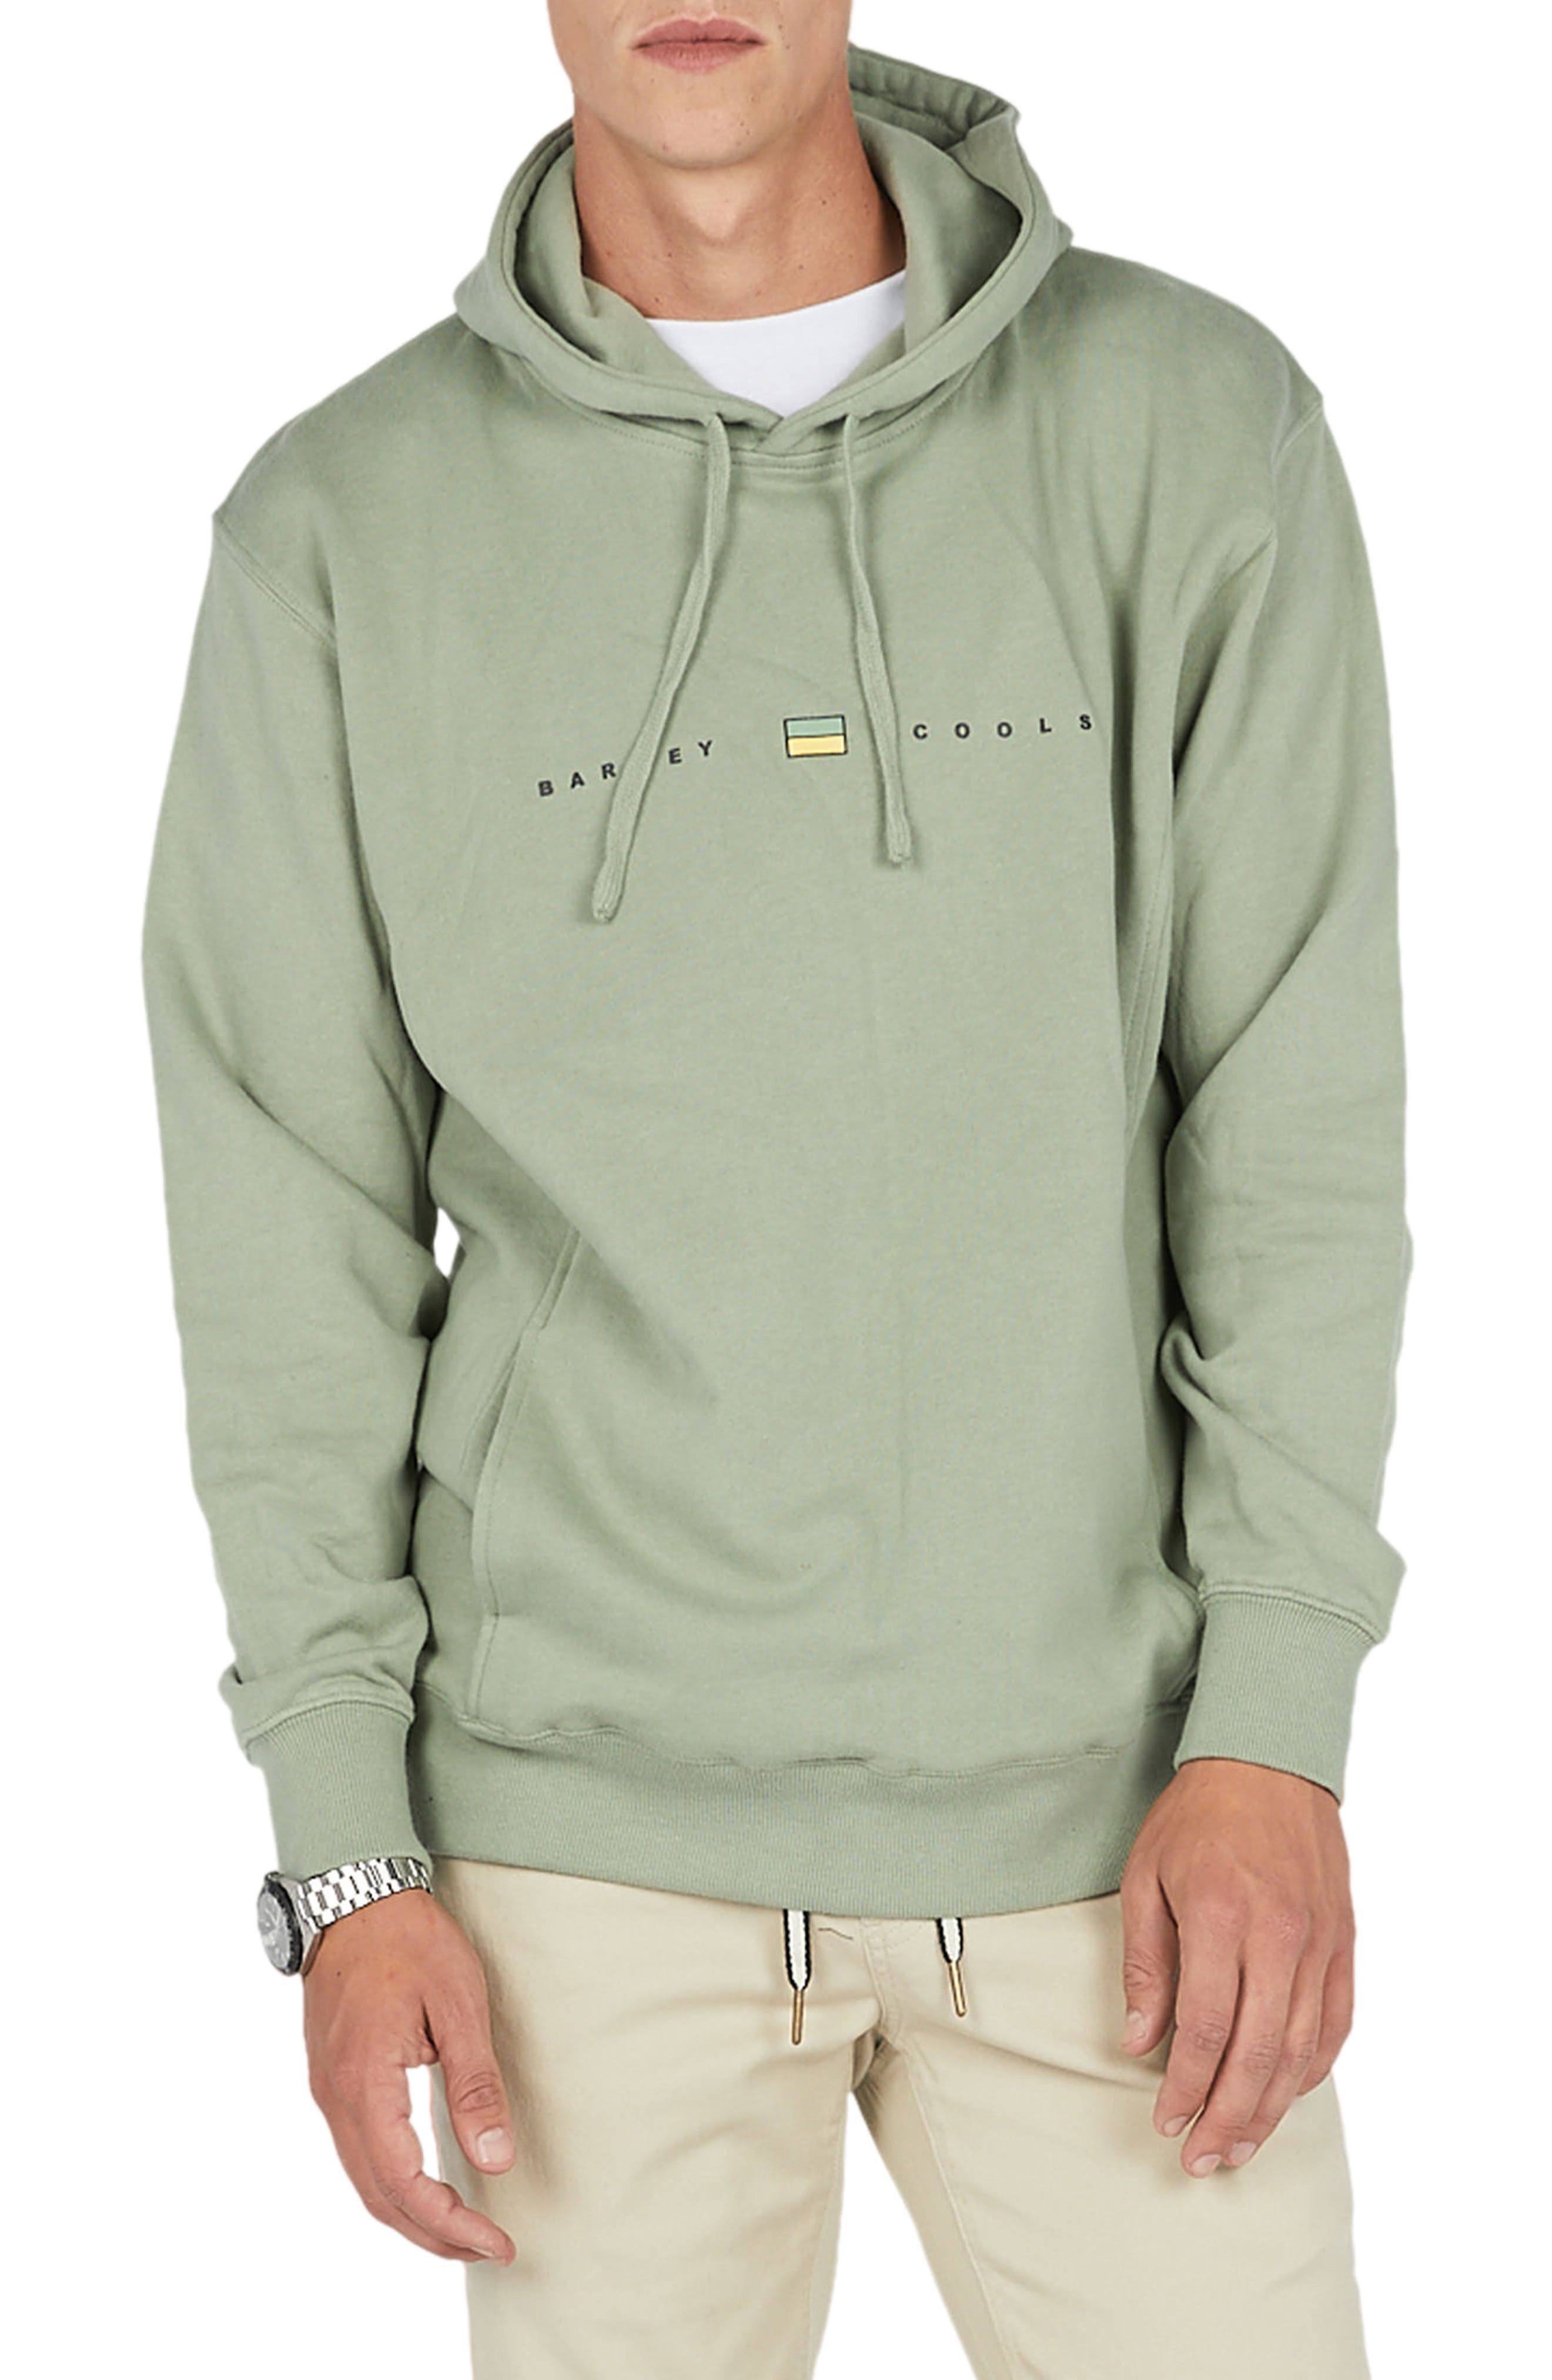 B. Cause Hoodie,                         Main,                         color, Seagrass